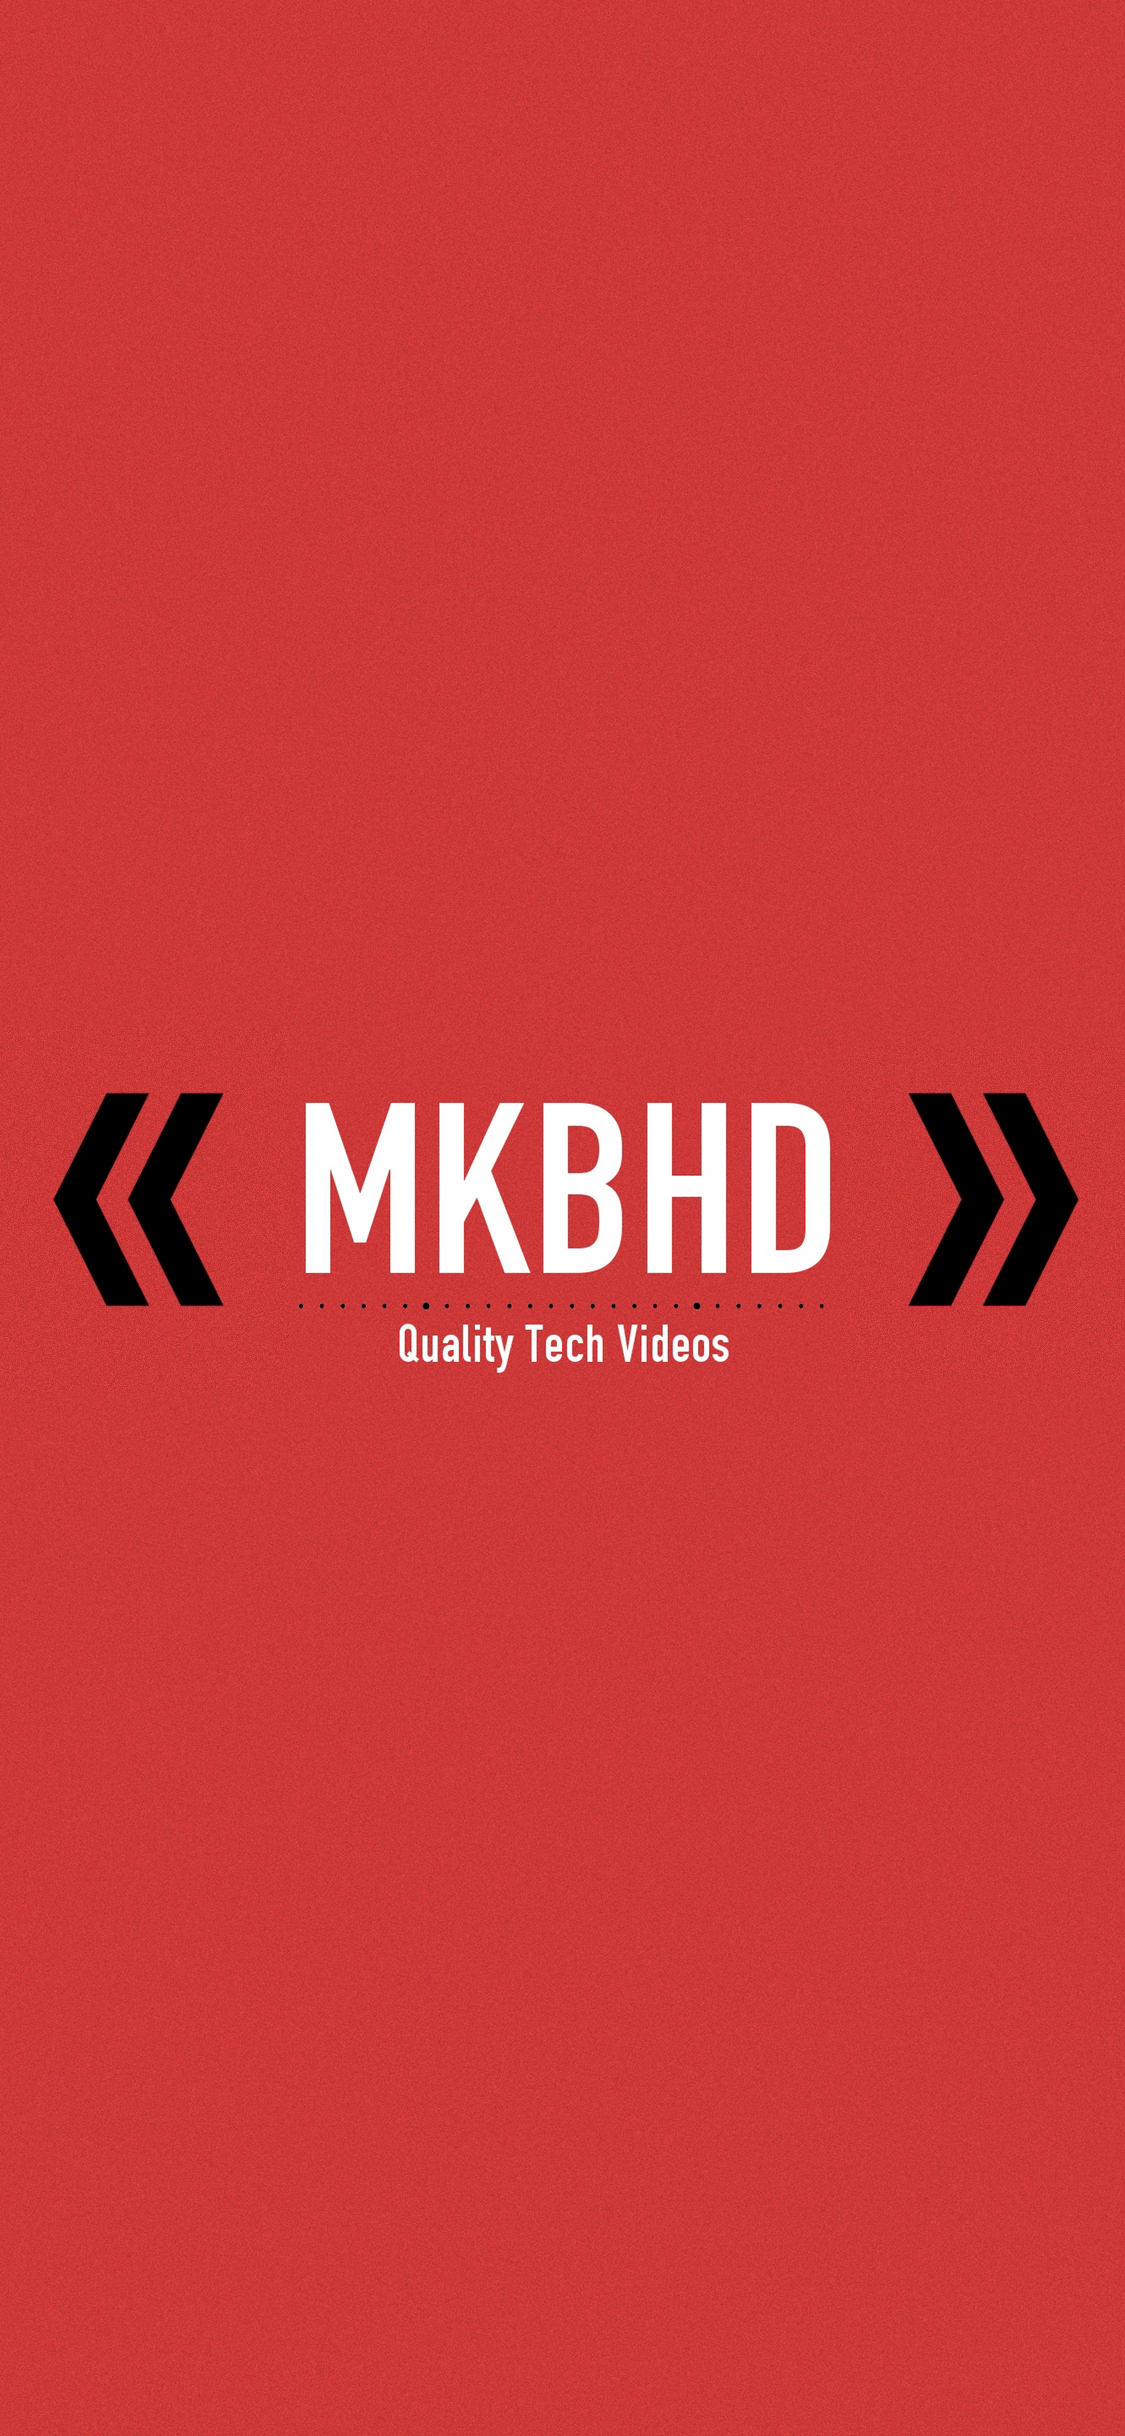 Oled Black Wallpaper Iphone X Official Mkbhd Wallpapers For Iphone Ipad Amp Desktop